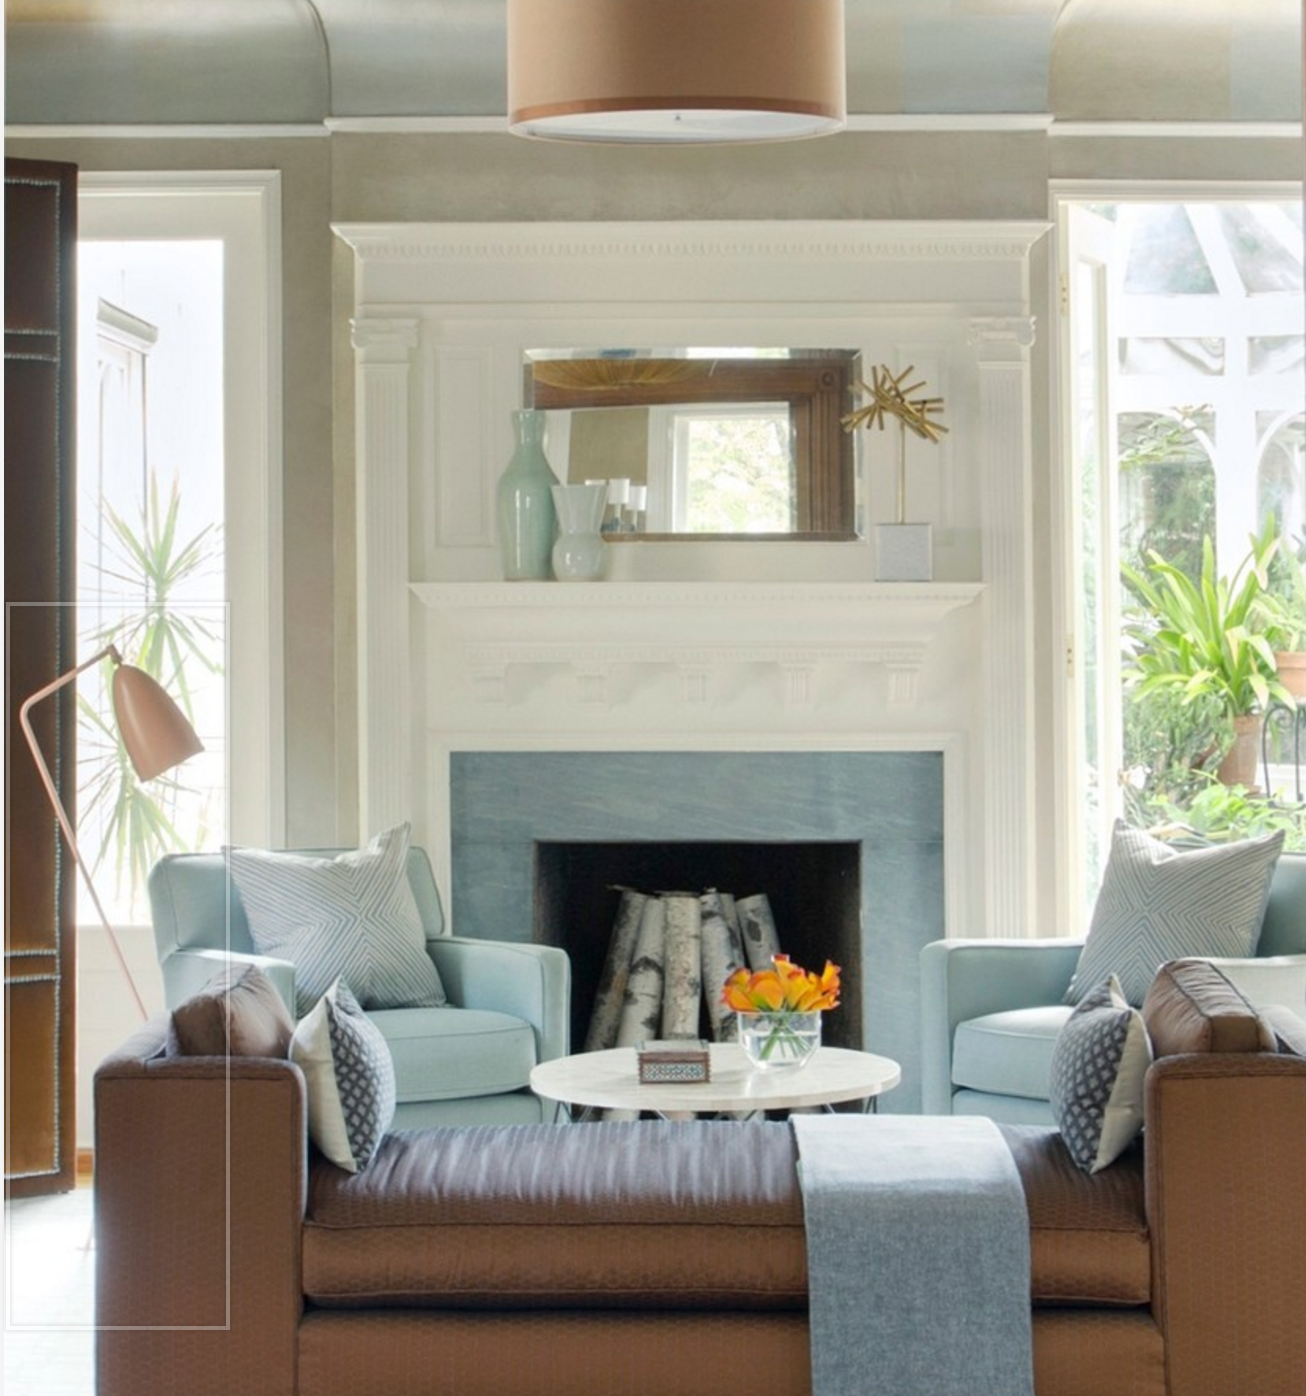 Explore Transitional Living Rooms, Bold Colors, And More!